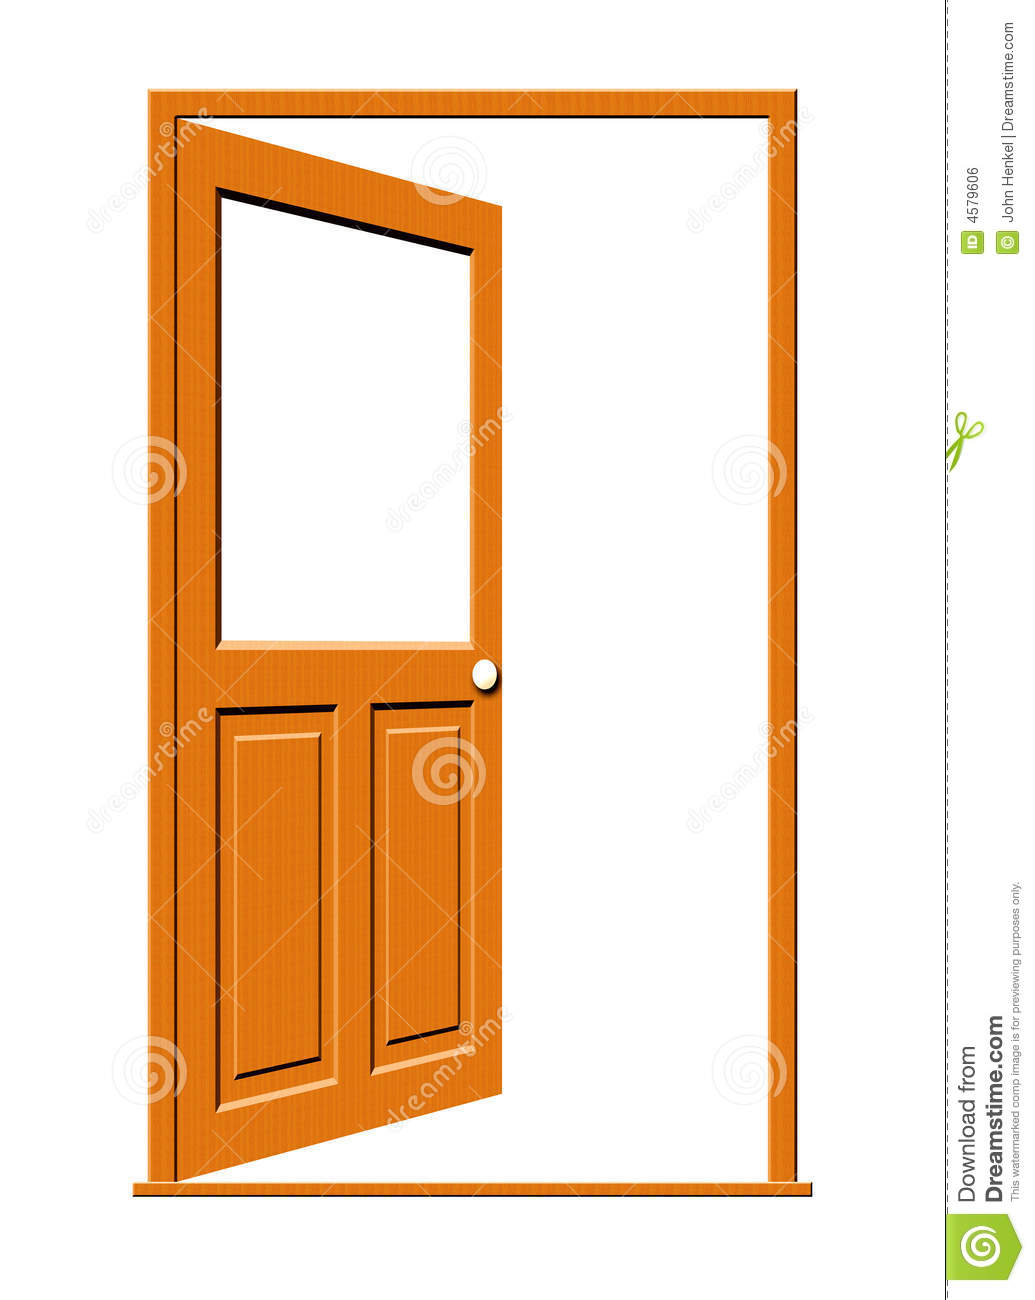 Door clipart open door #1